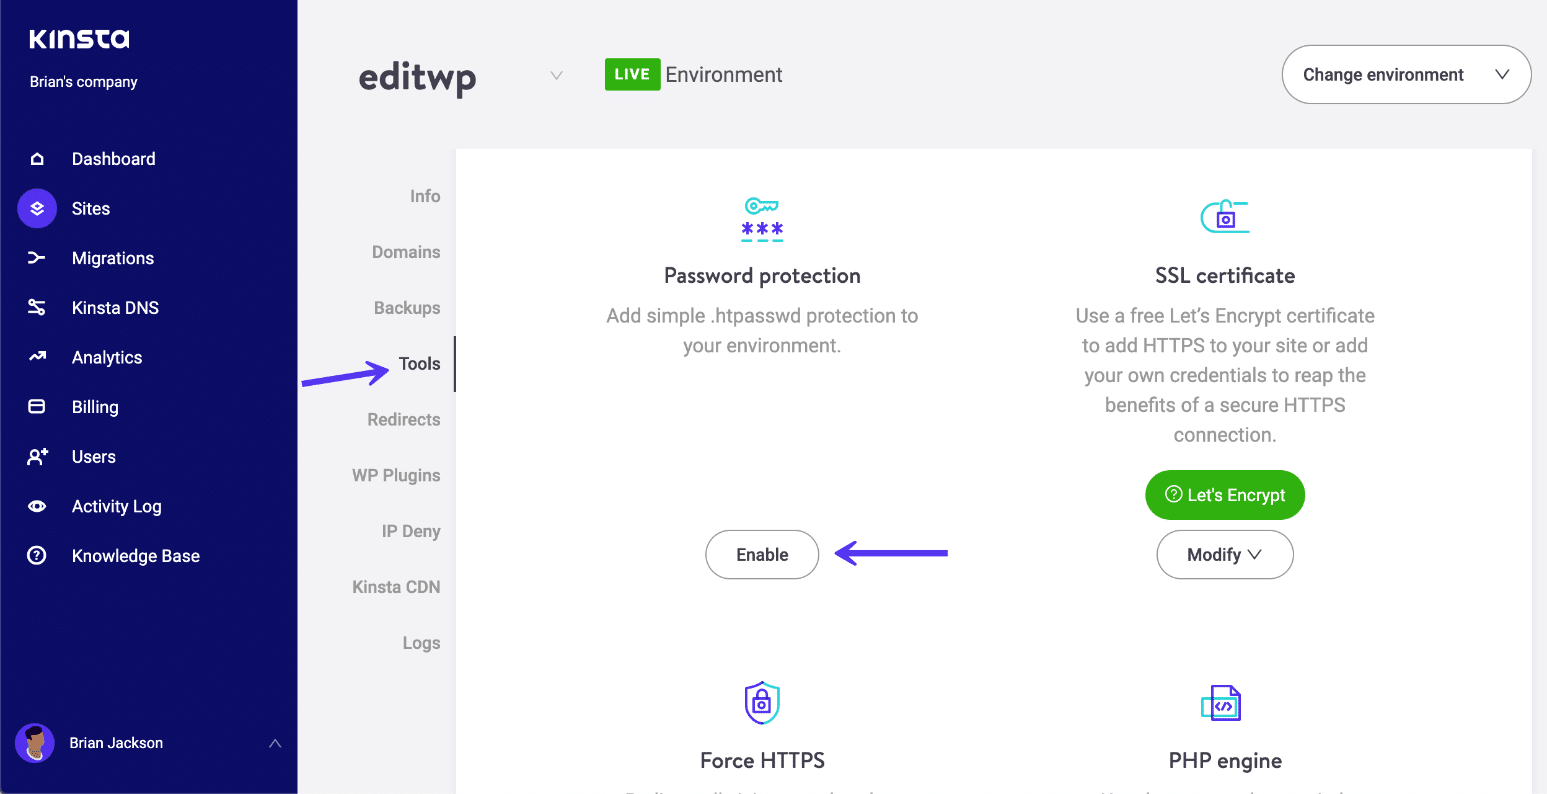 Enable .htpasswd protection